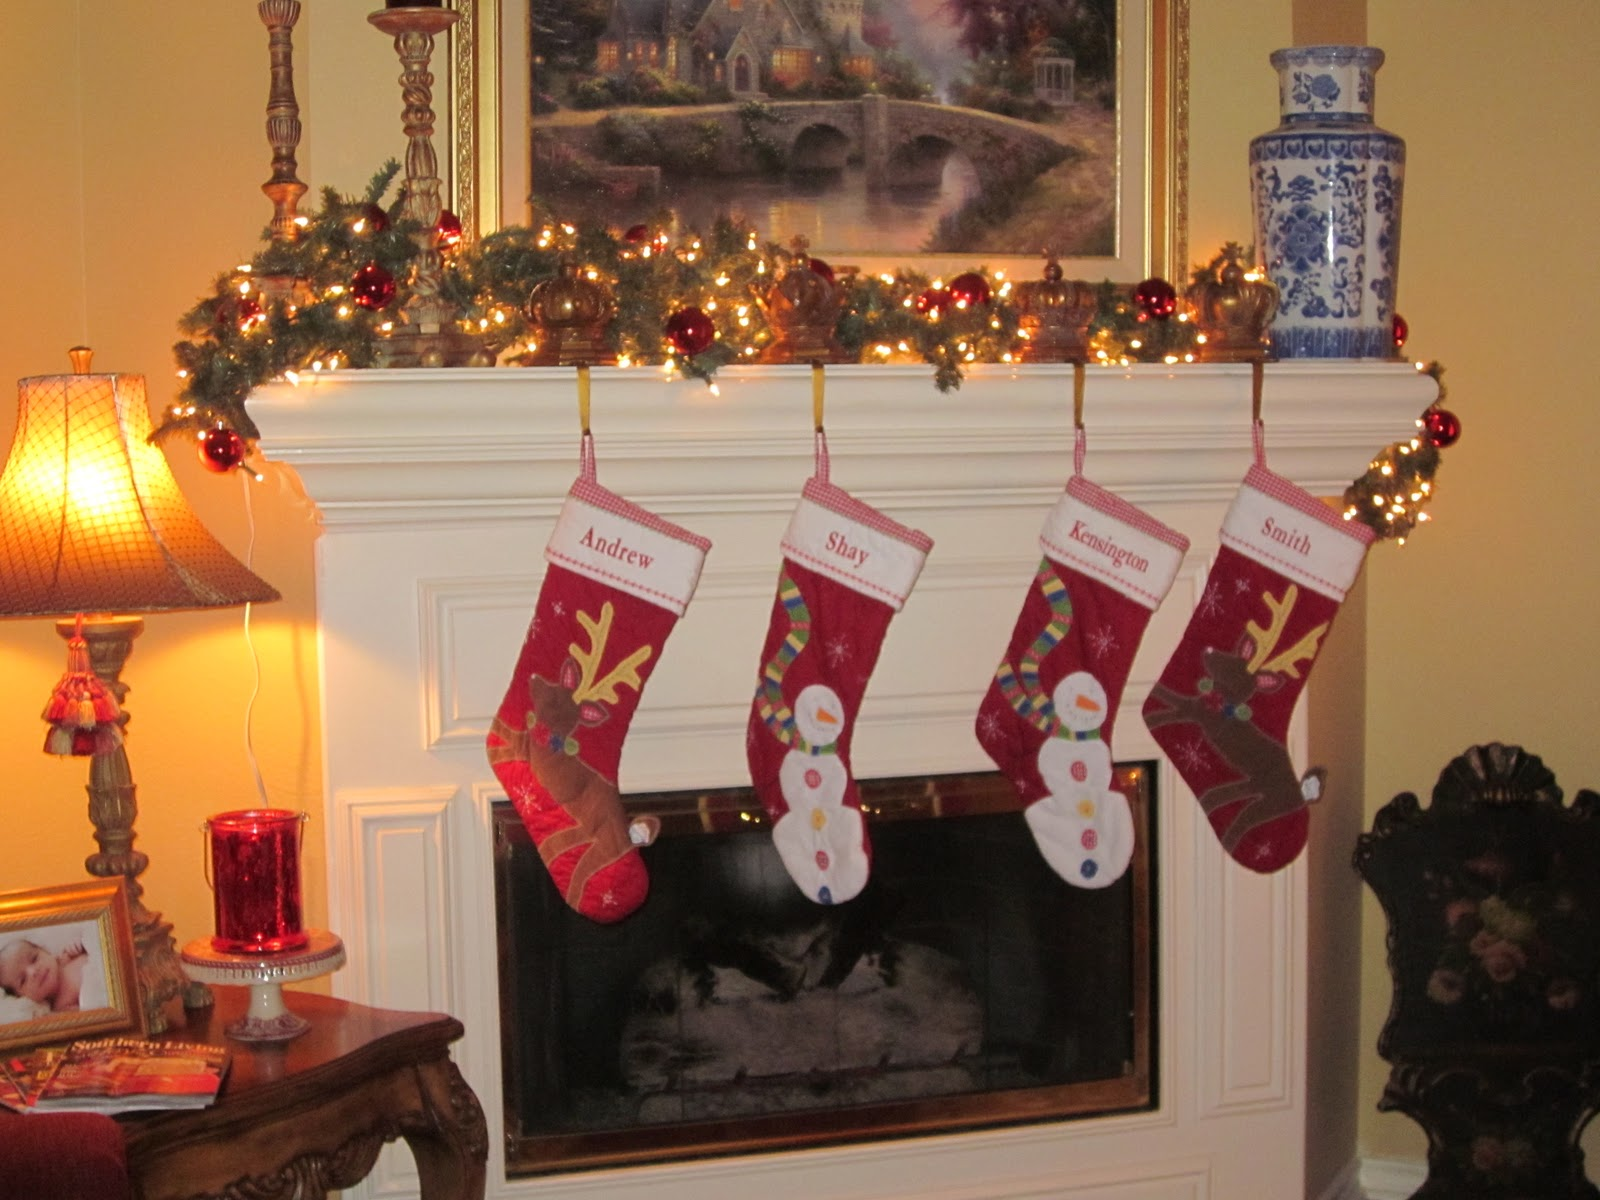 The stockings were hung by chimney with care mix and